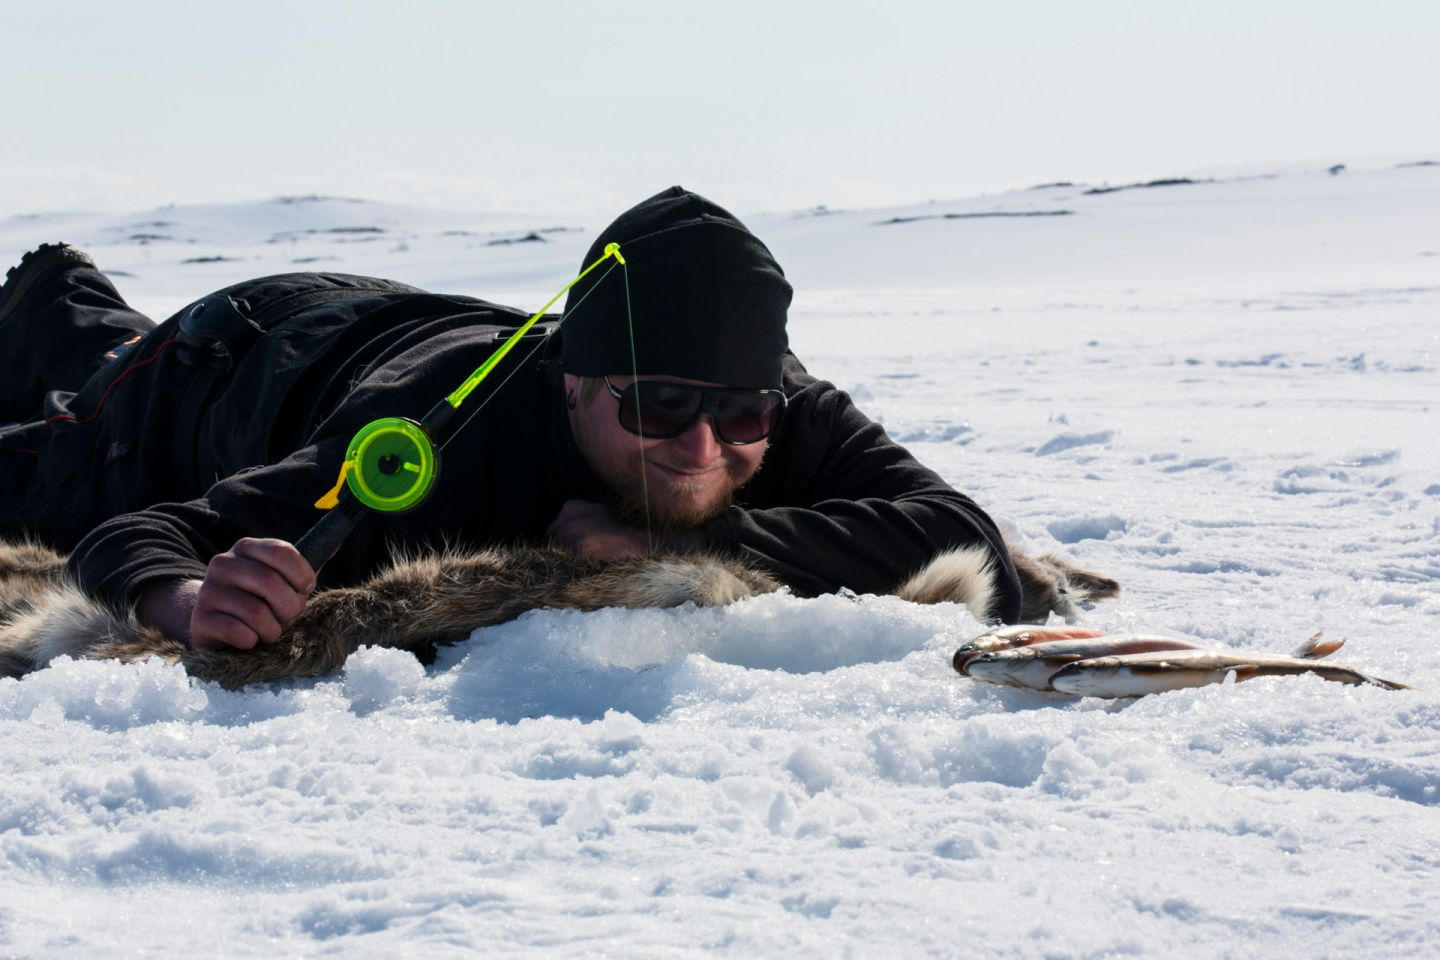 Ice-fishing in Nuorgam, Finland in winter